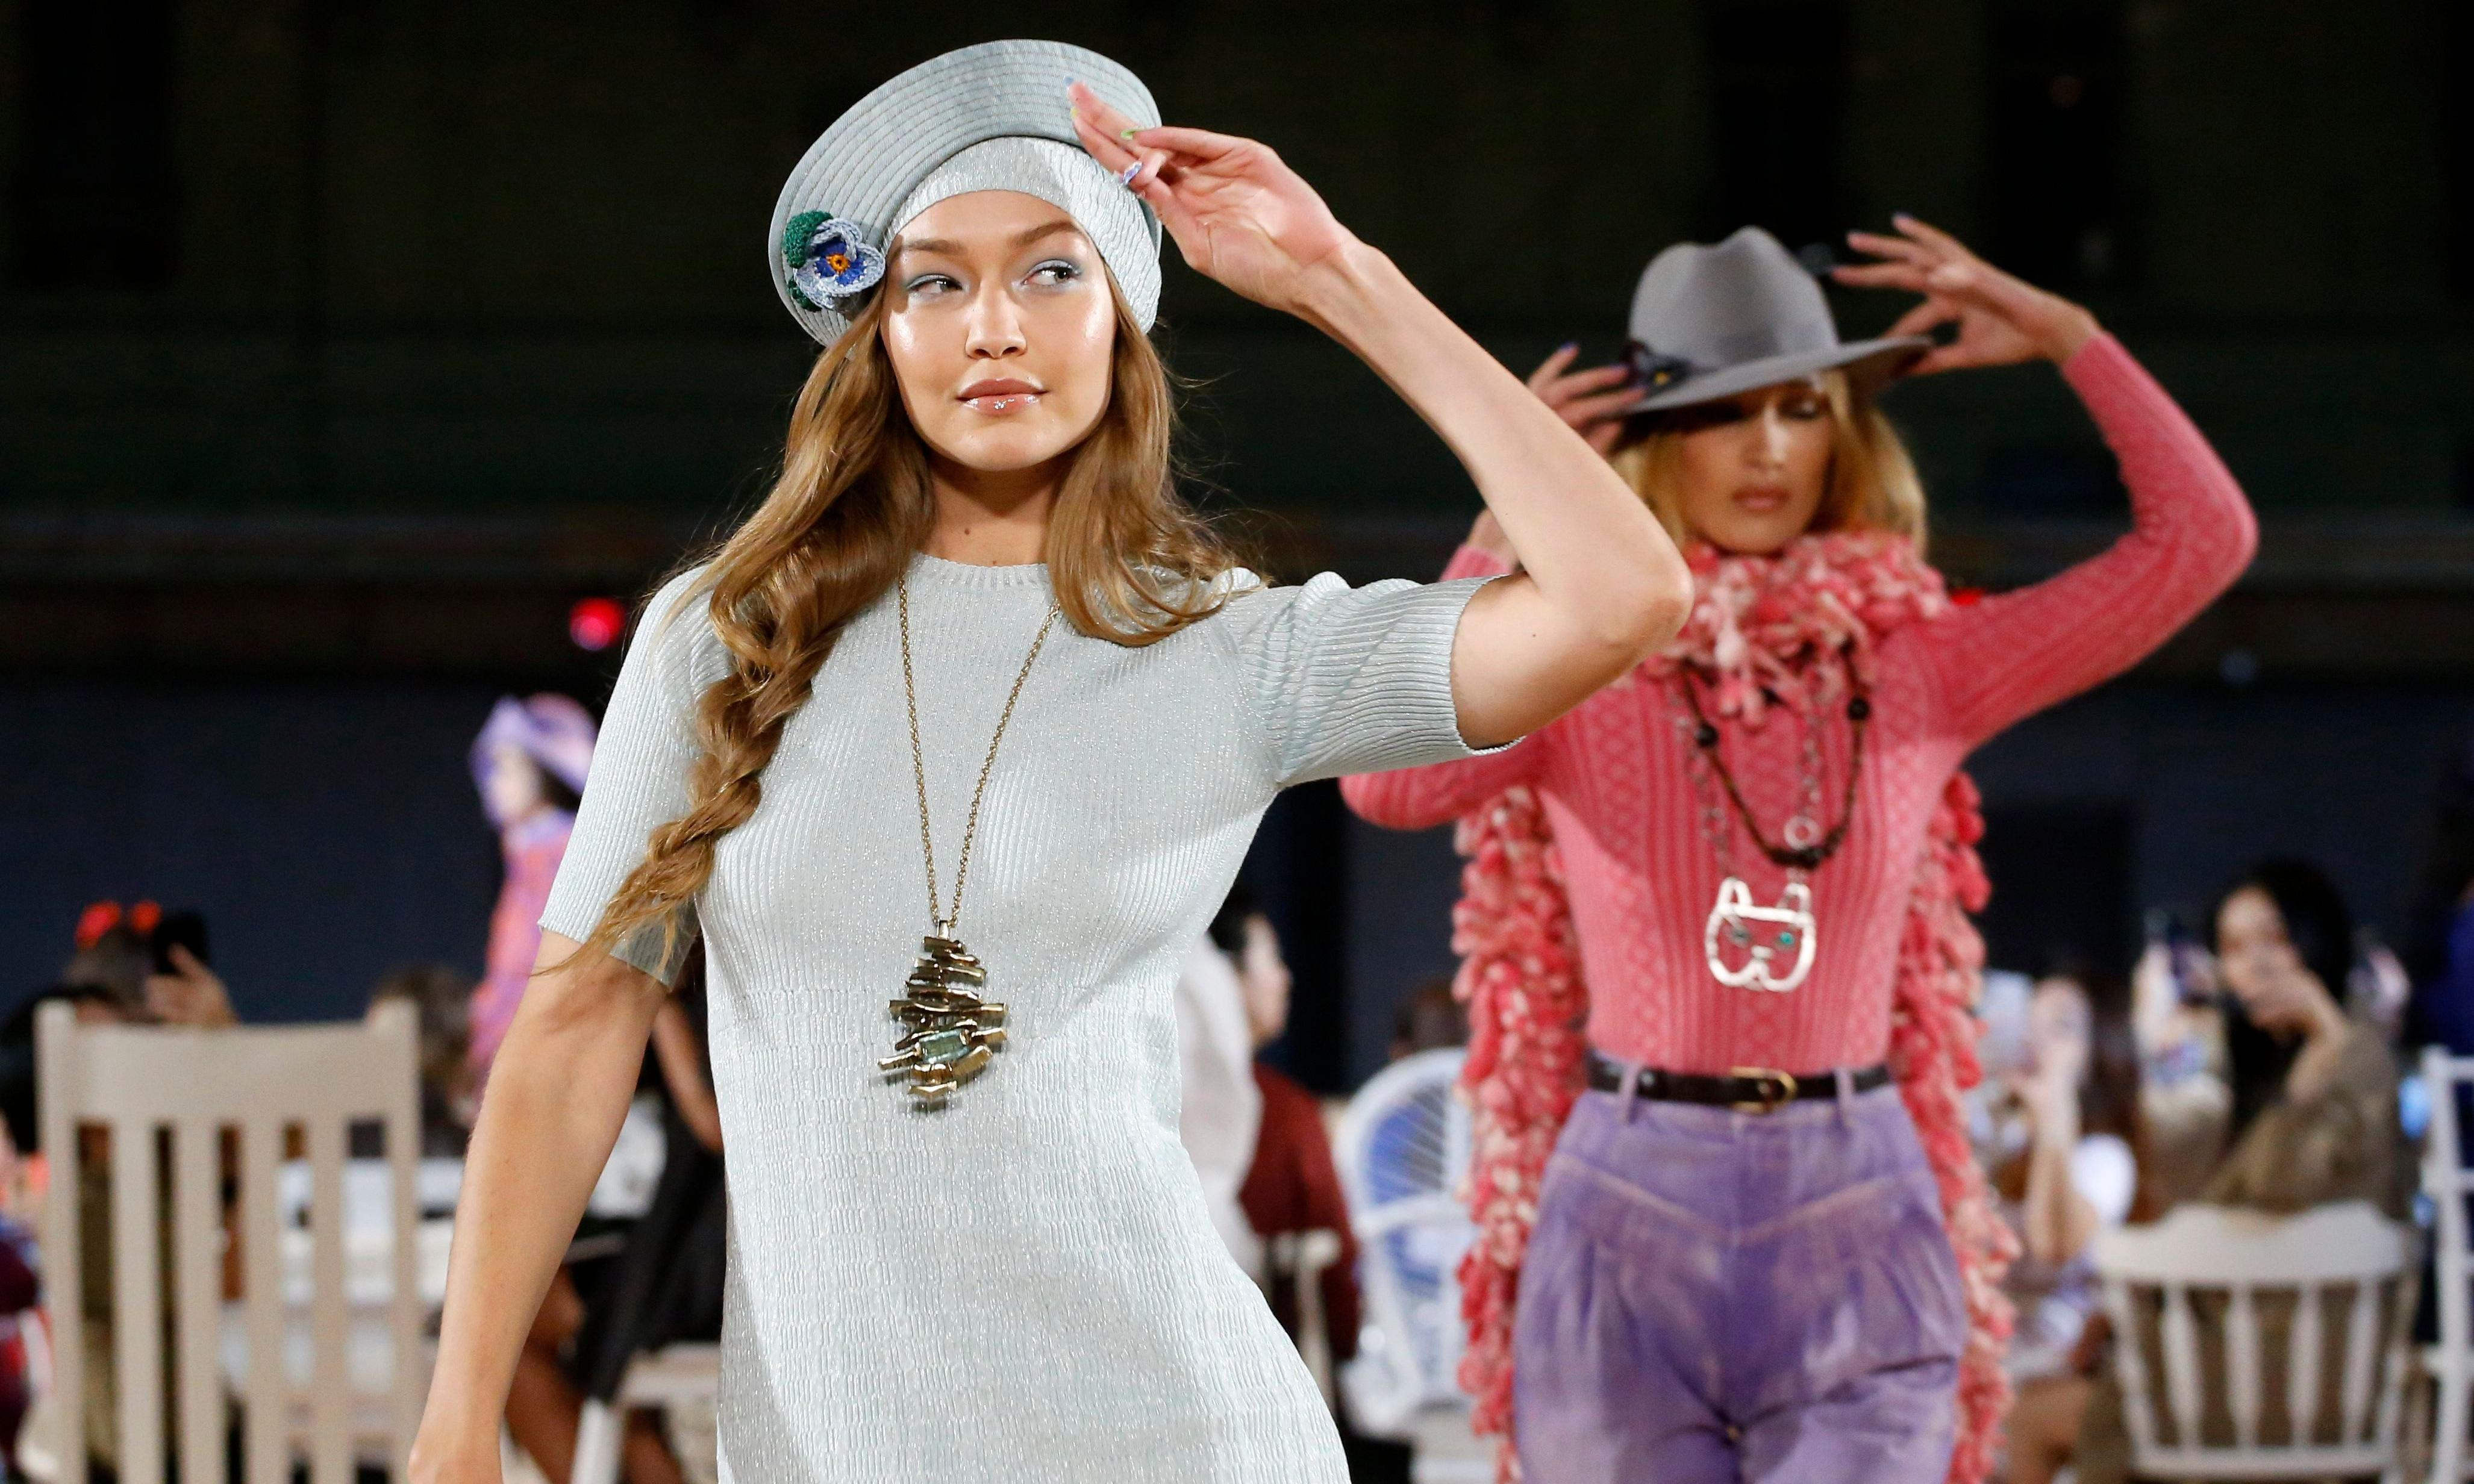 Drama and reflection as Marc Jacobs brings New York fashion week to a close